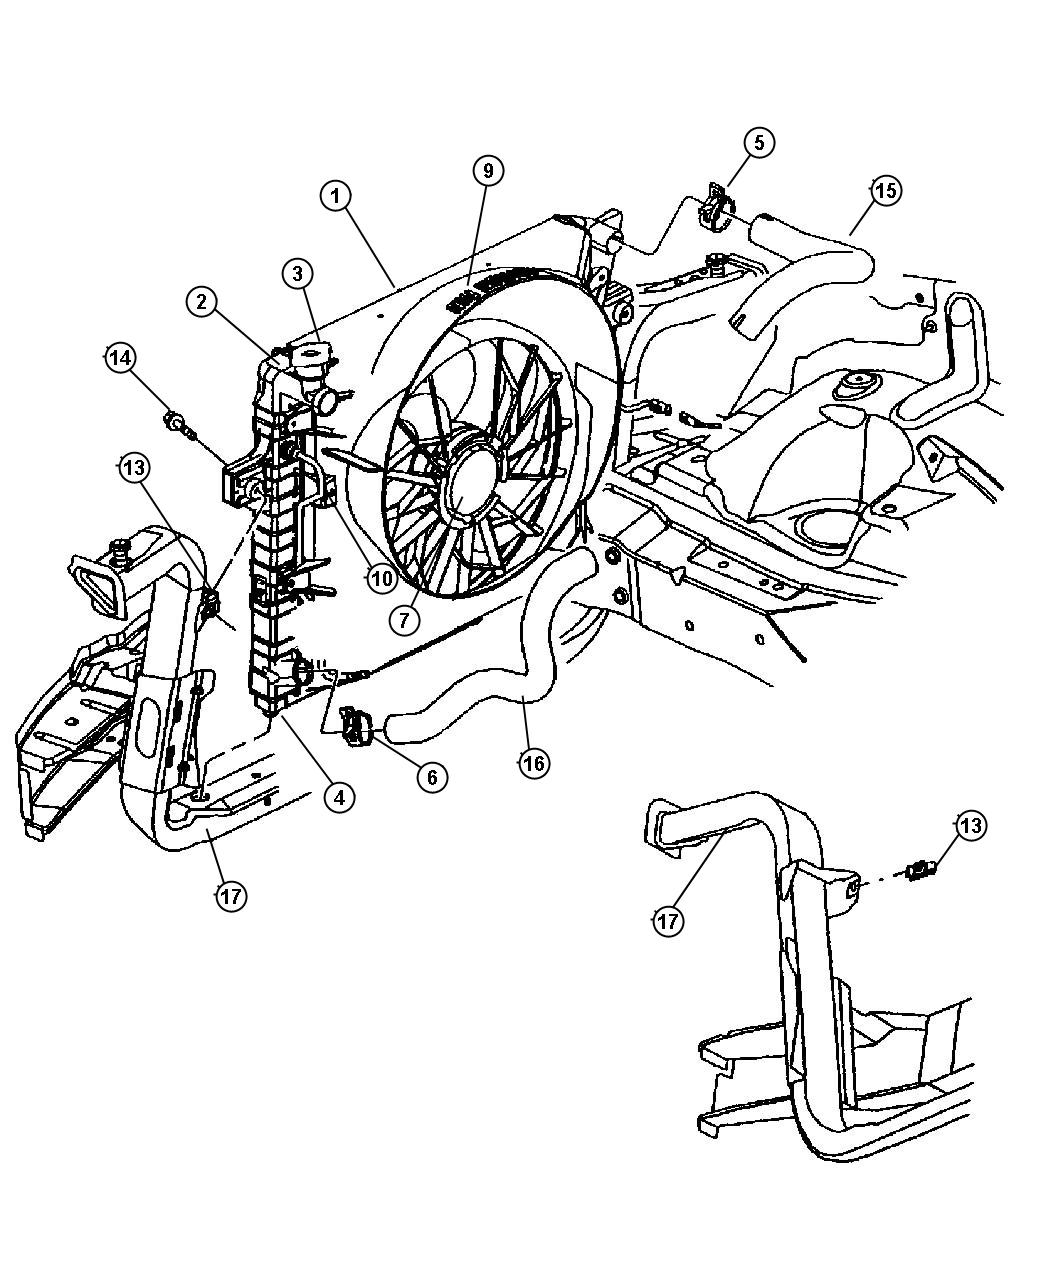 Jeep Cj5 Renegade Furthermore 79 Jeep Cj5 Wiring Diagram Moreover Seat